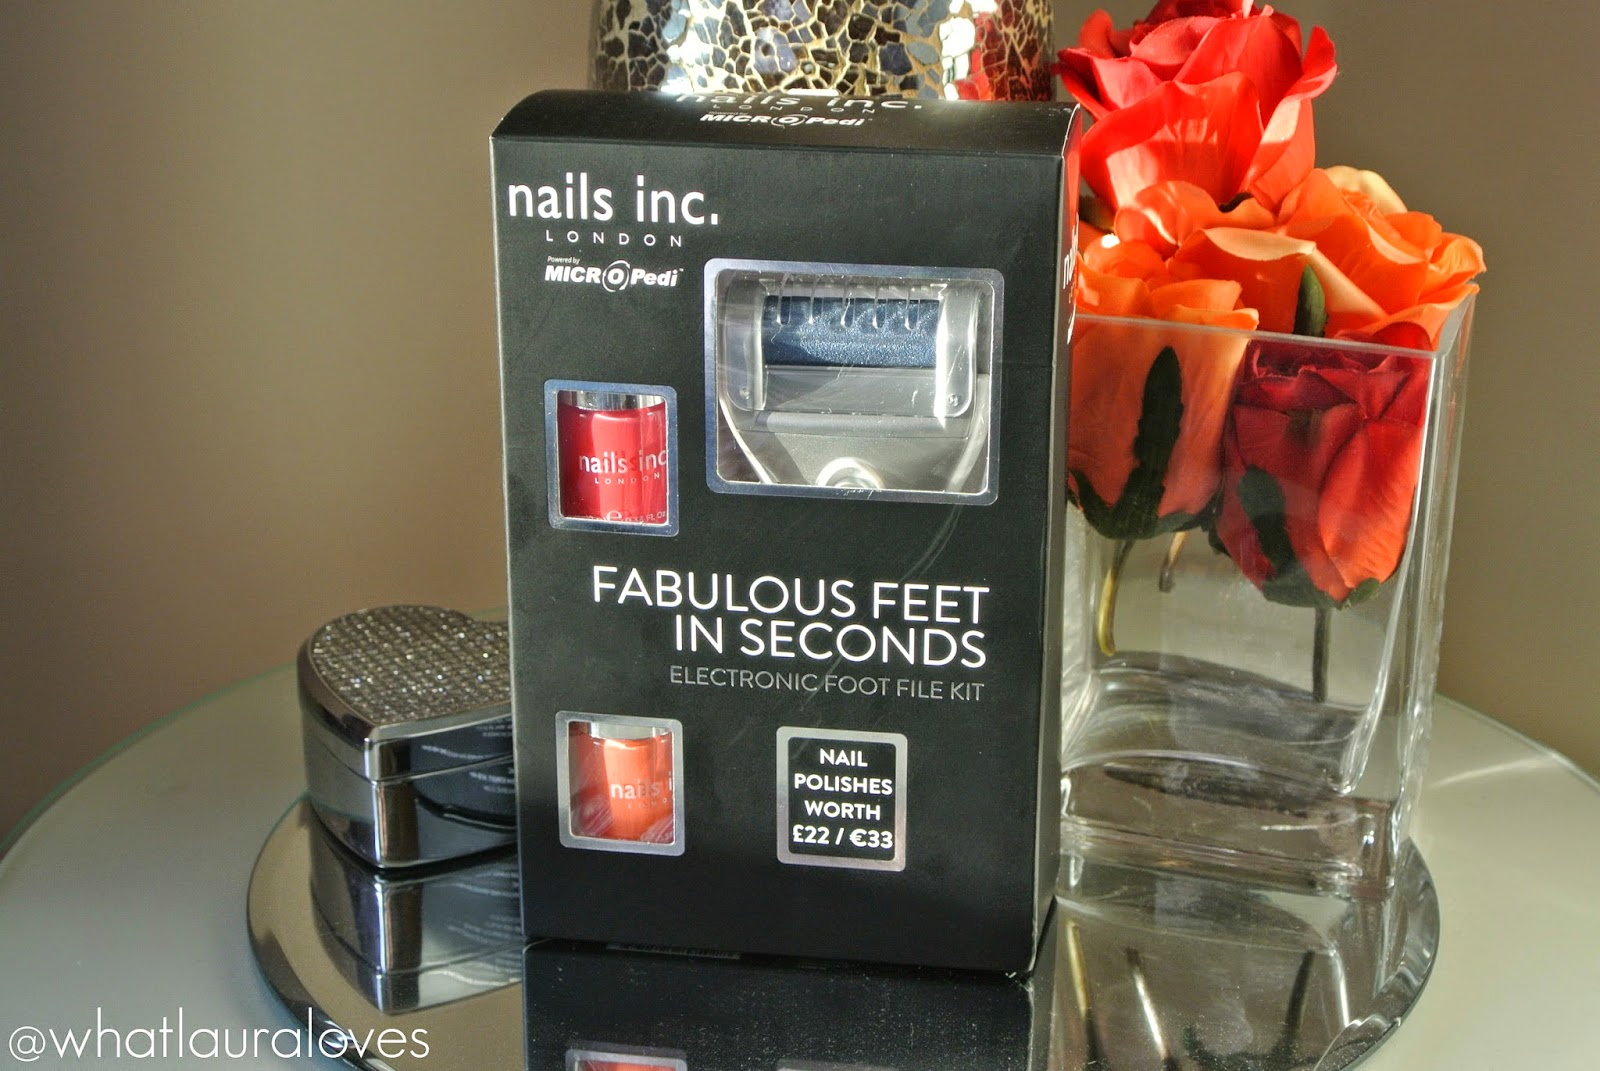 Nails Inc and Micro Pedi Fabulous Feet in Seconds Electronic Foot File Kit